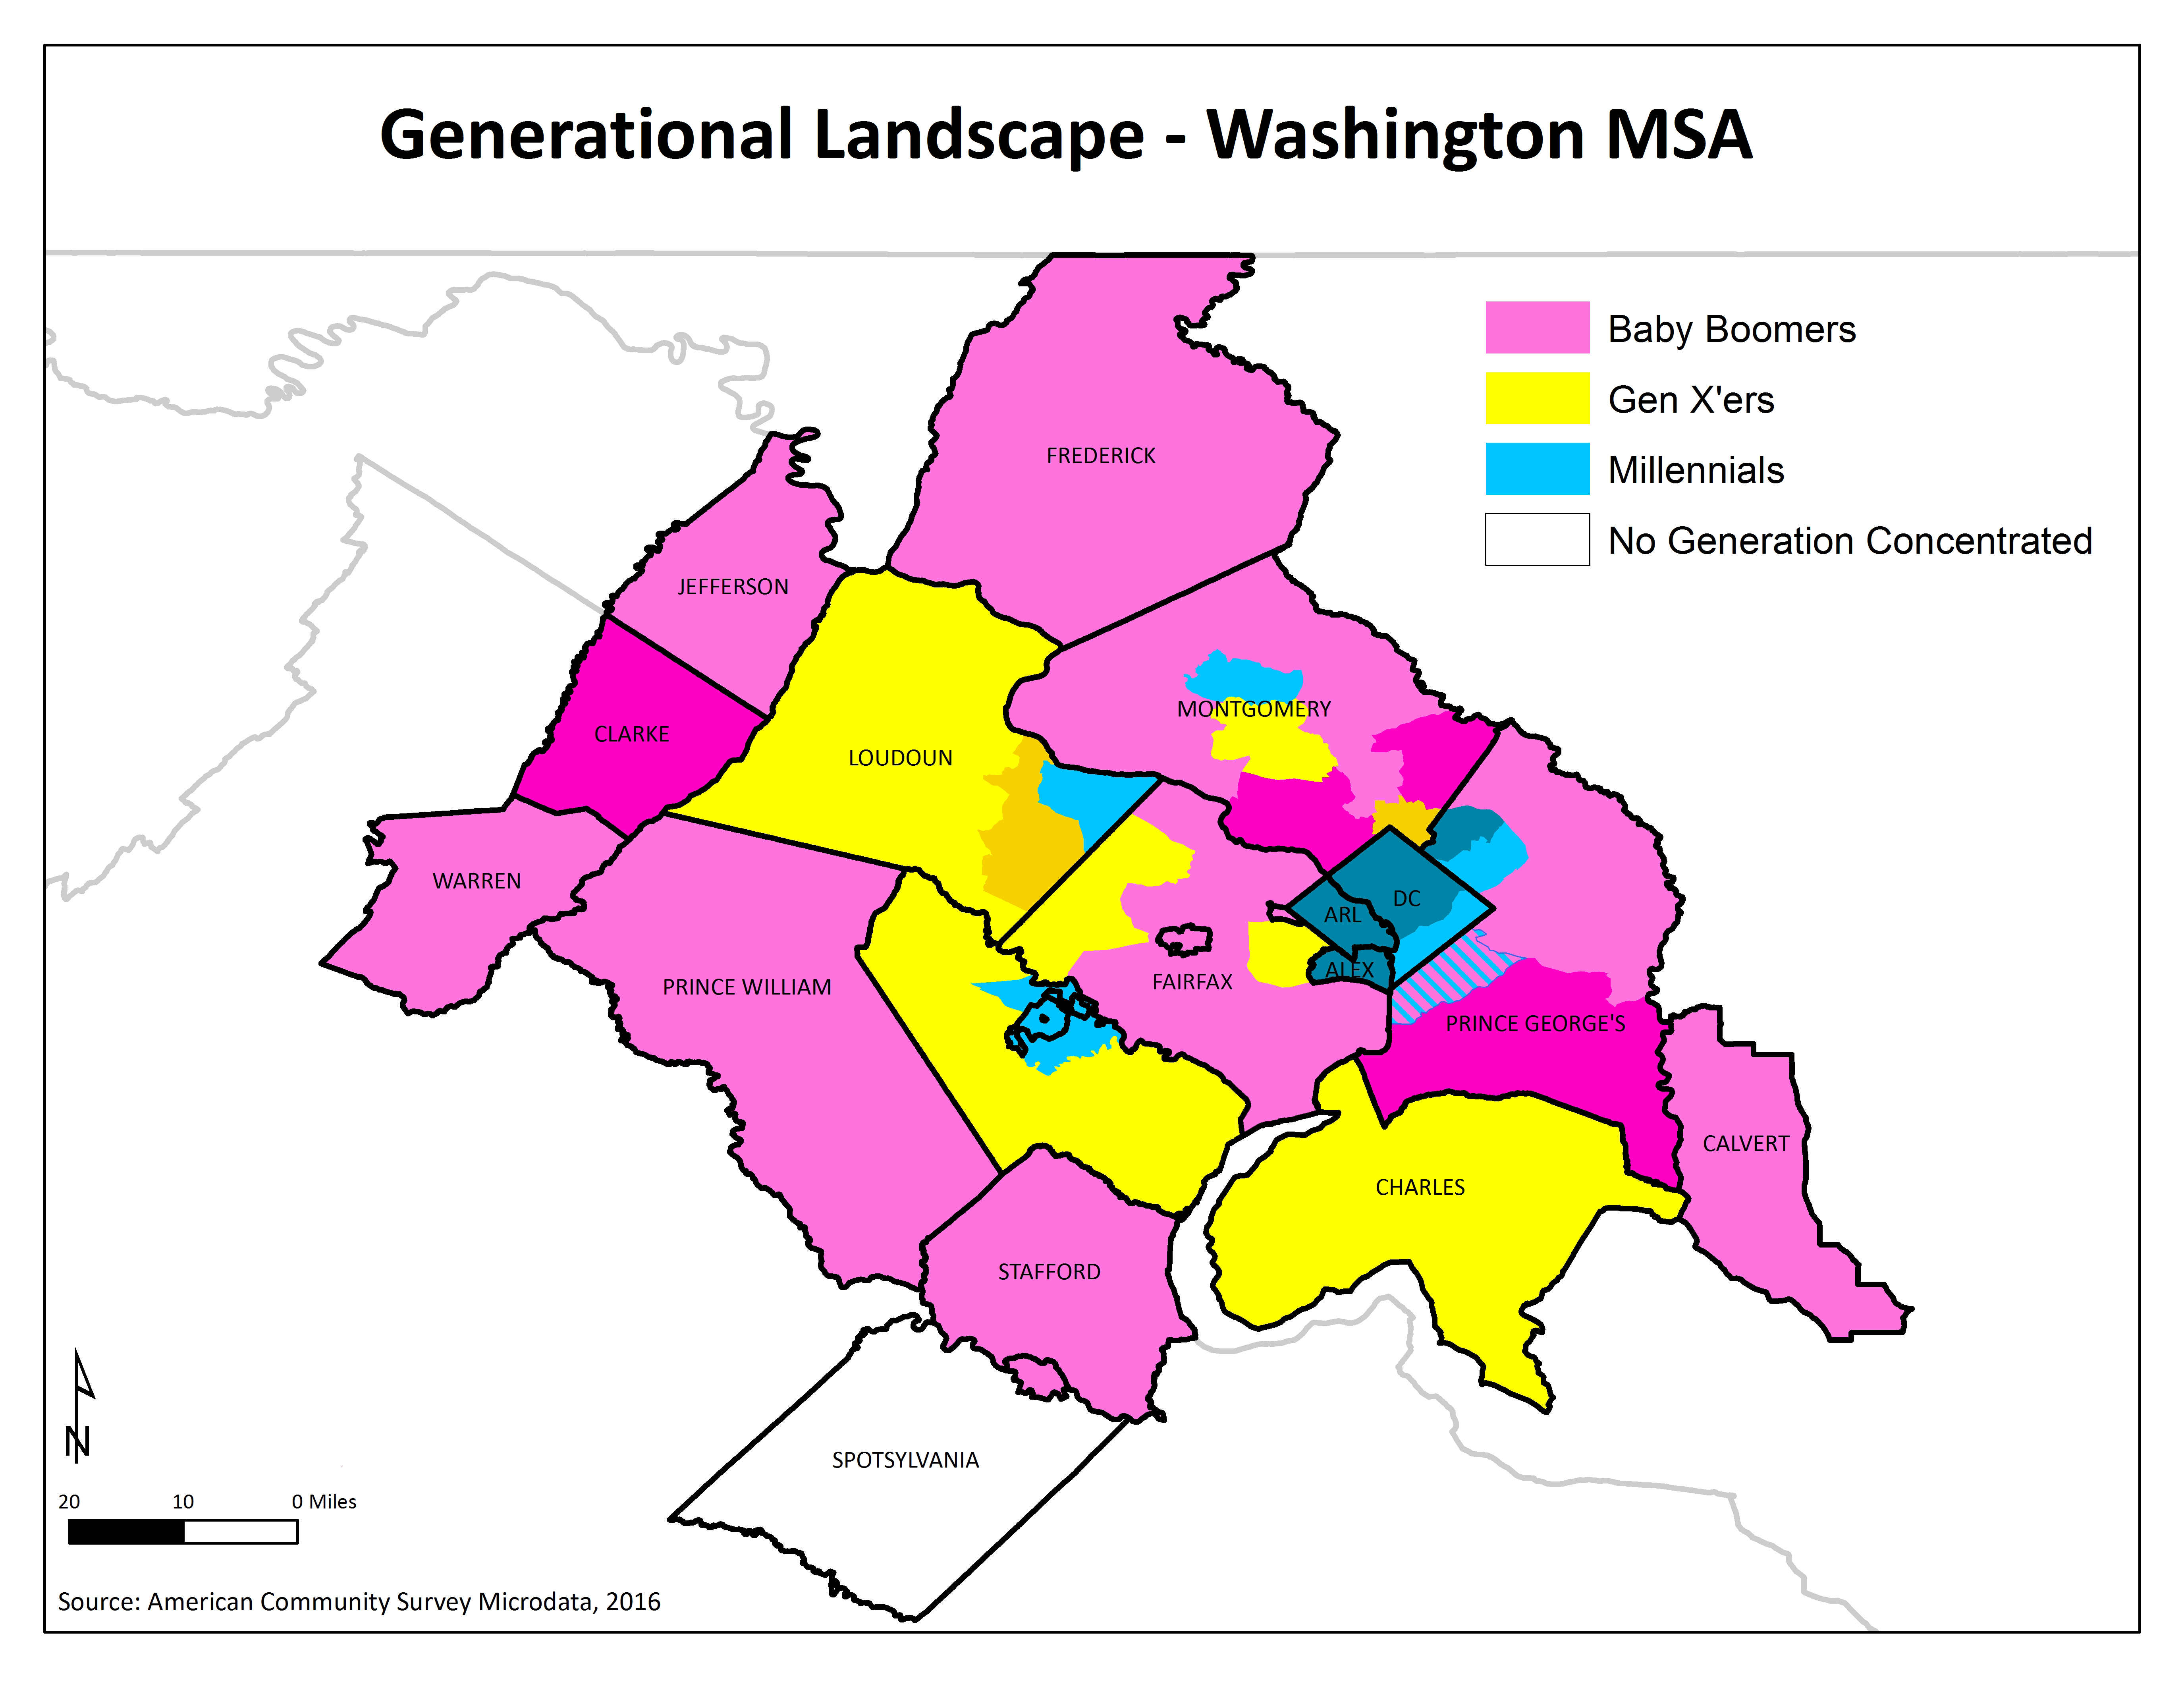 Where We Live: Millennials, Gen X'ers and Boomers in the DC Area